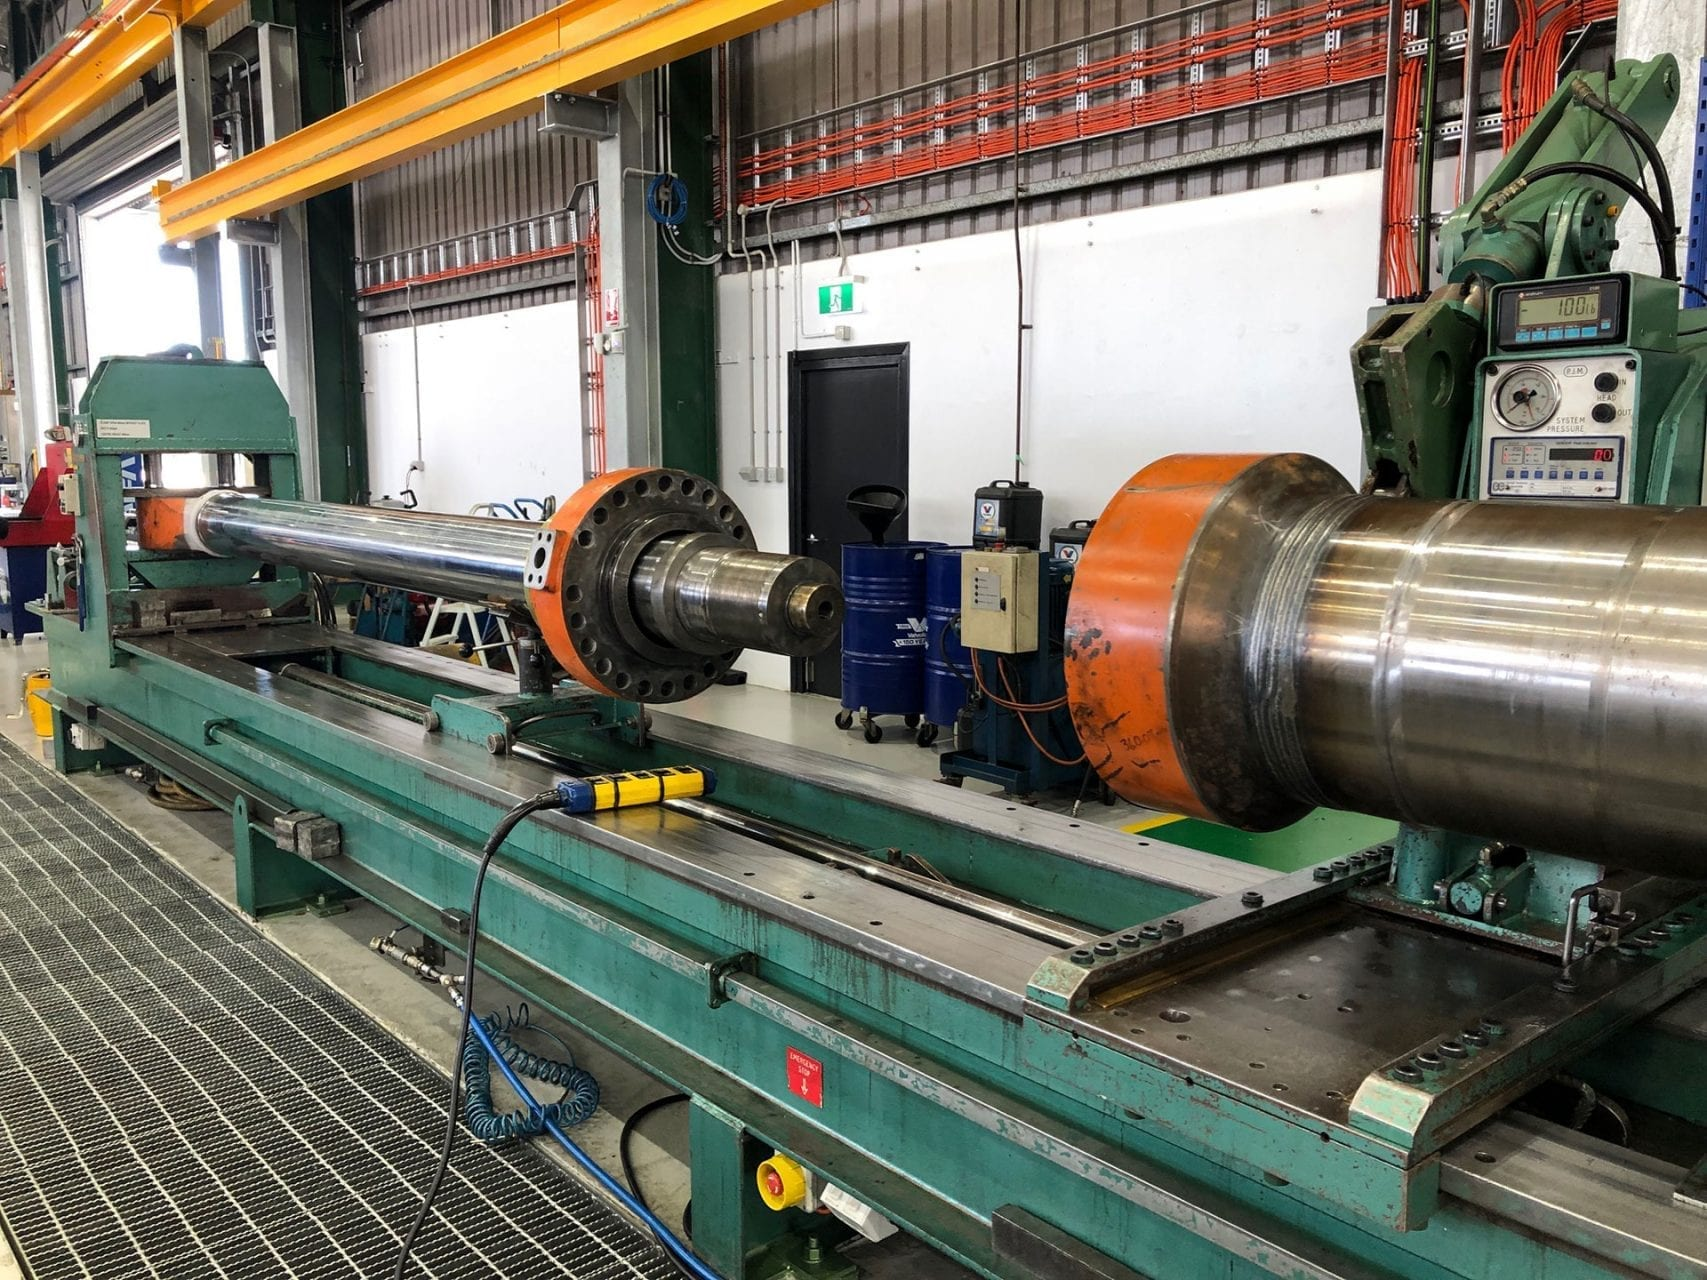 10m Lathe for hydraulic cylinder repair Newcastle